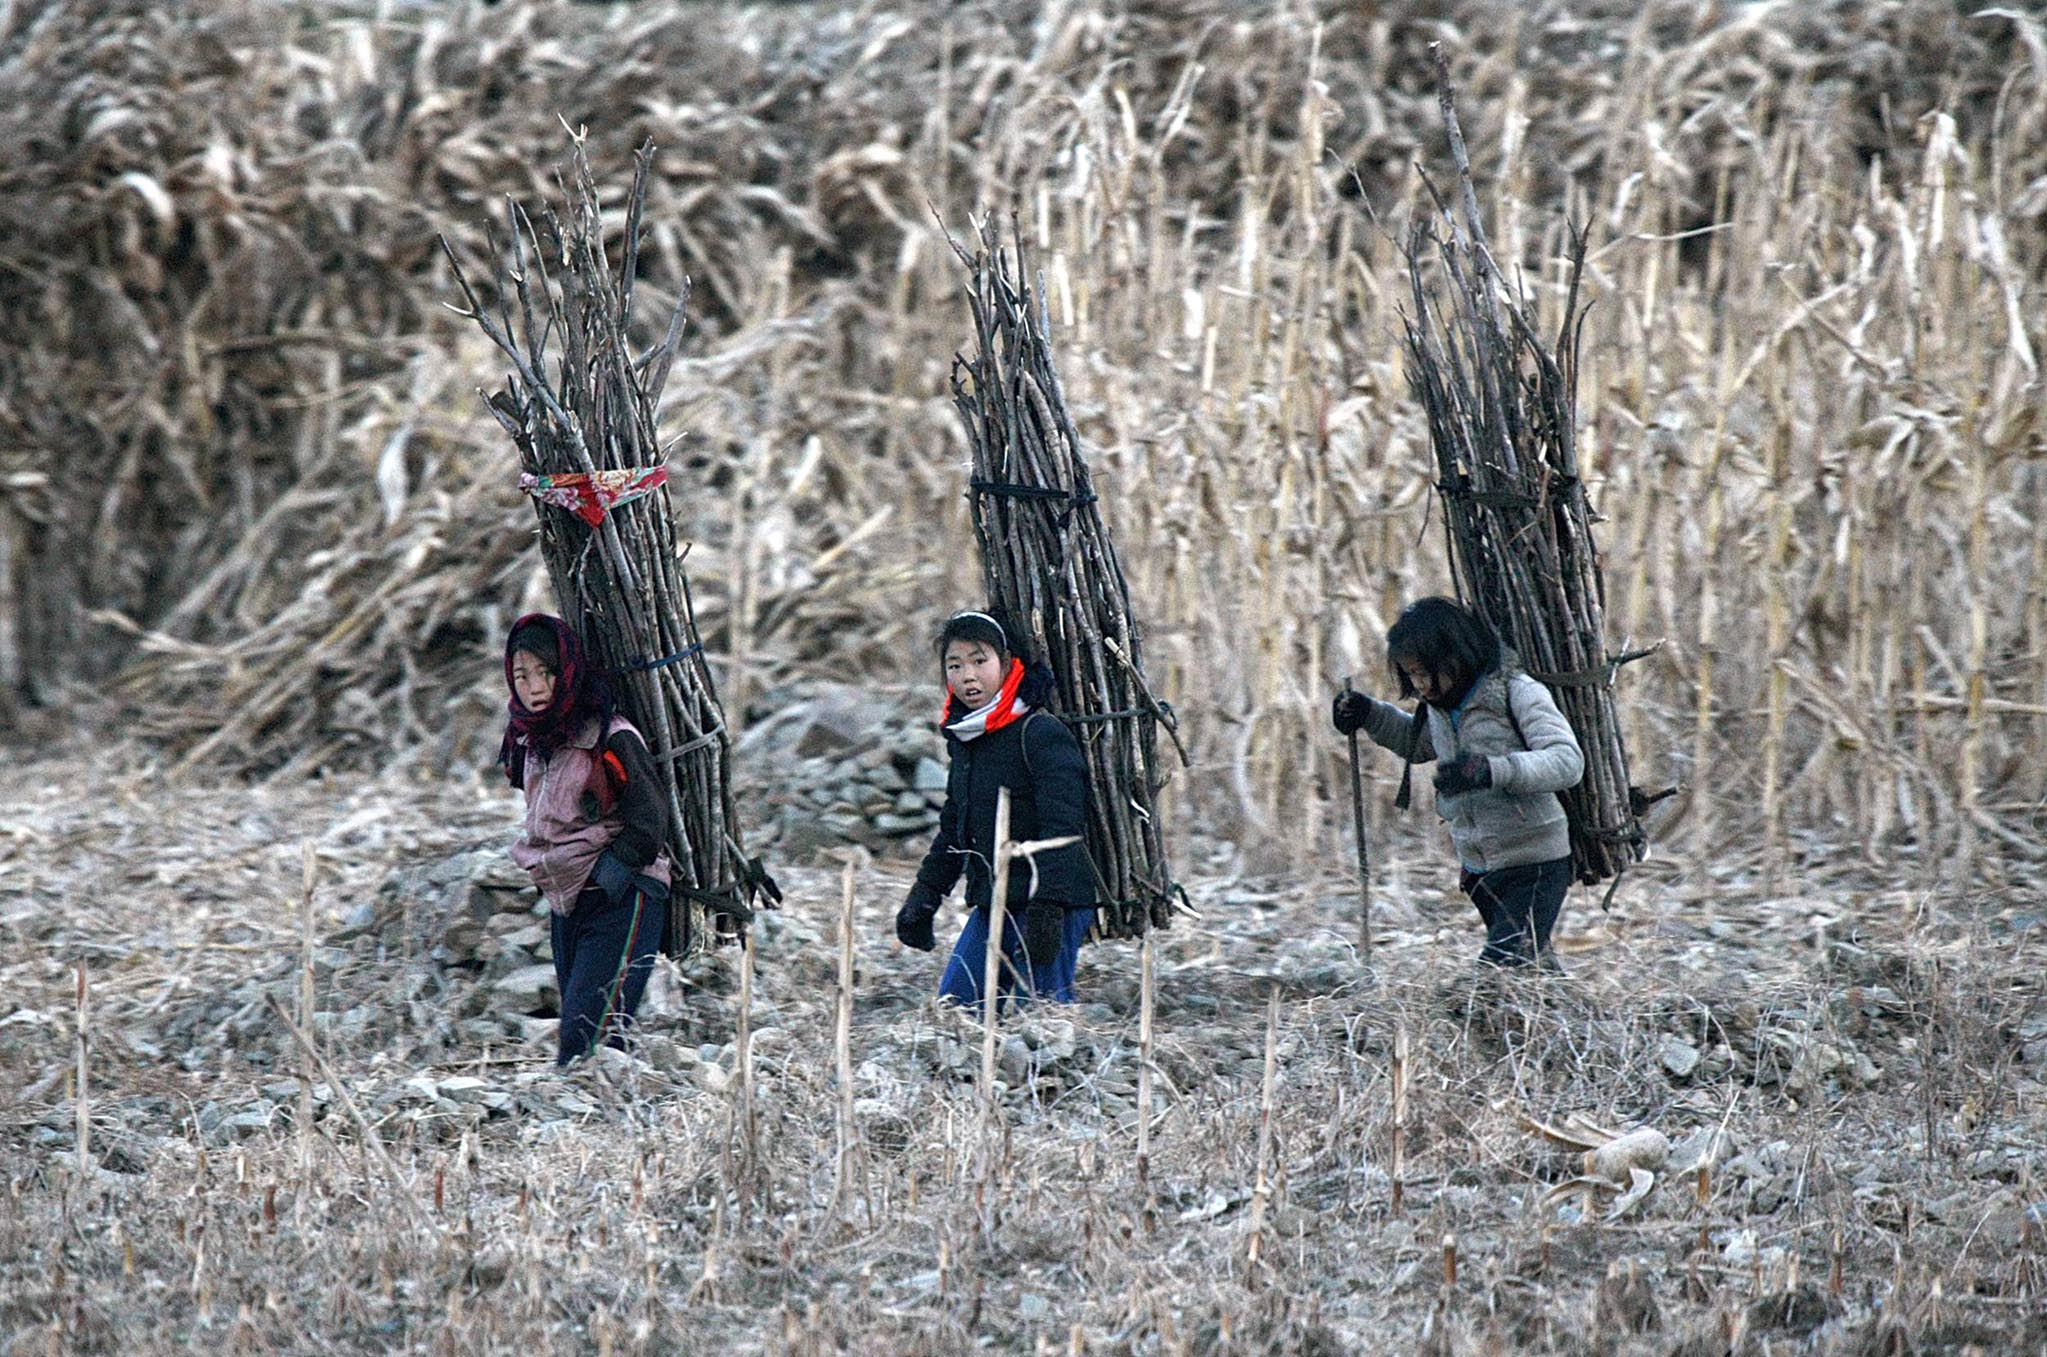 North Korean girls carry firewood as they walk on the banks of Yalu River, near the North Korean town of Sinuiju